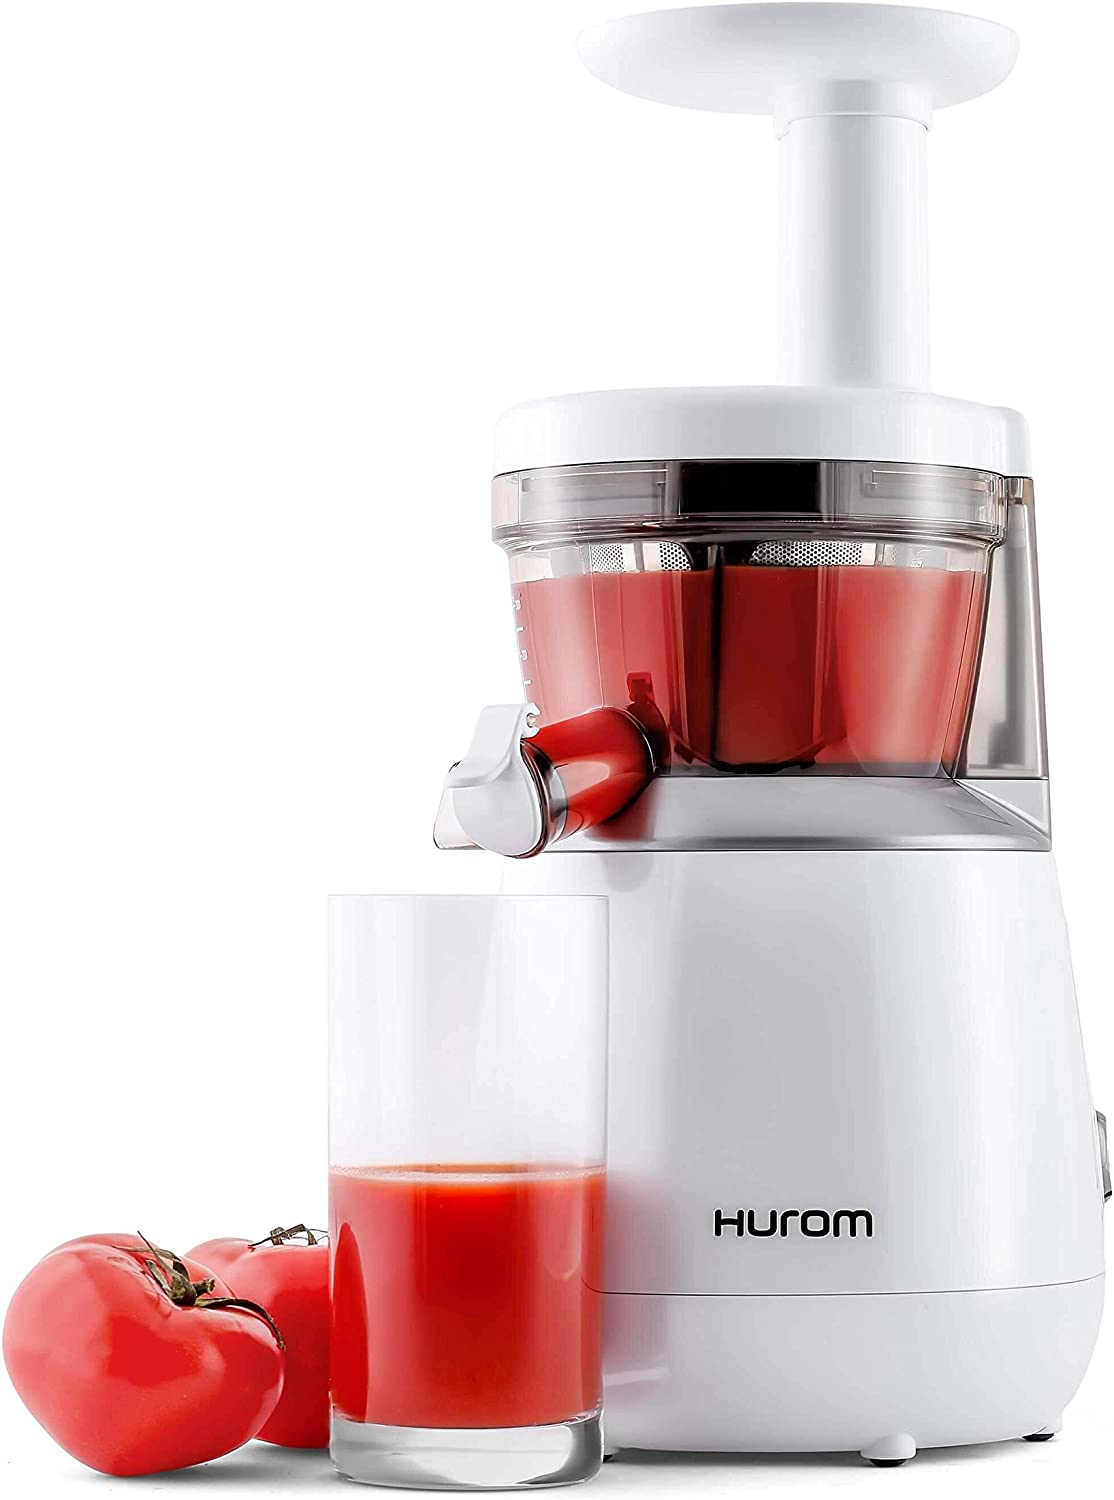 71%2Bkt443piL. AC SL1500 Best Juicers for Tomatoes 2021 - Reviews & Buying Guide